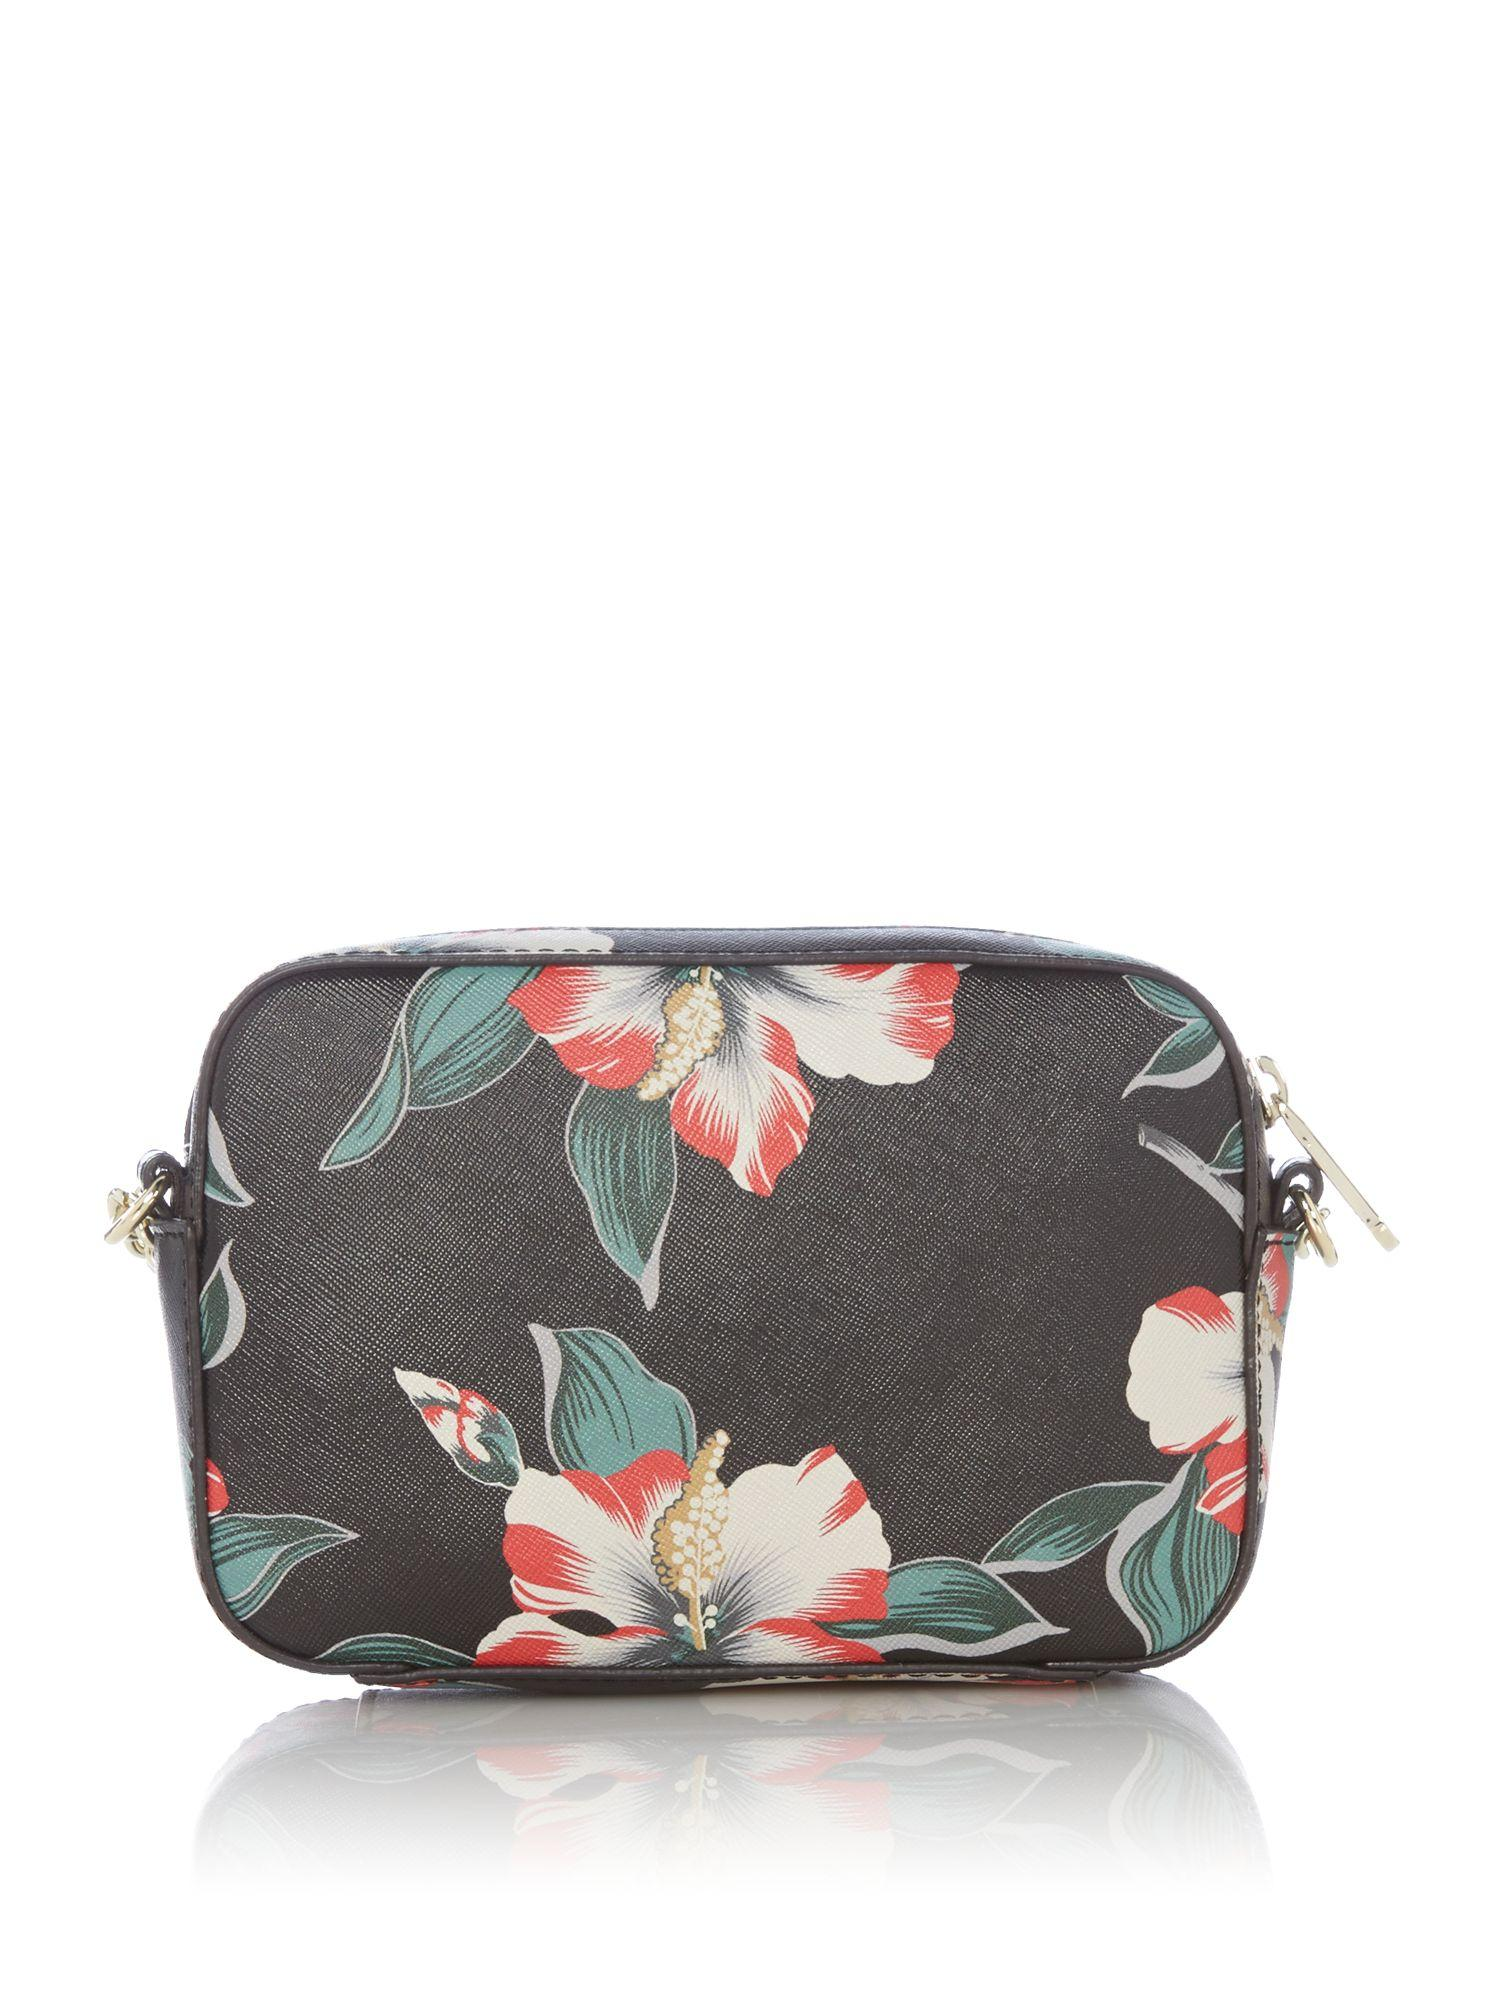 Guess Isabeau Floral Cross Body Bag